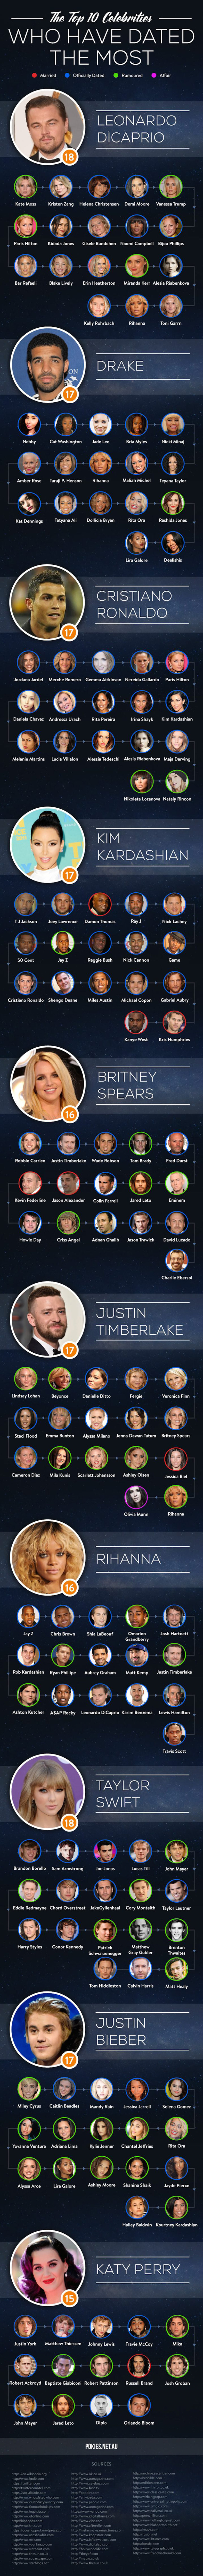 Celebrity Dating History Who Have Dated The Most Infographic